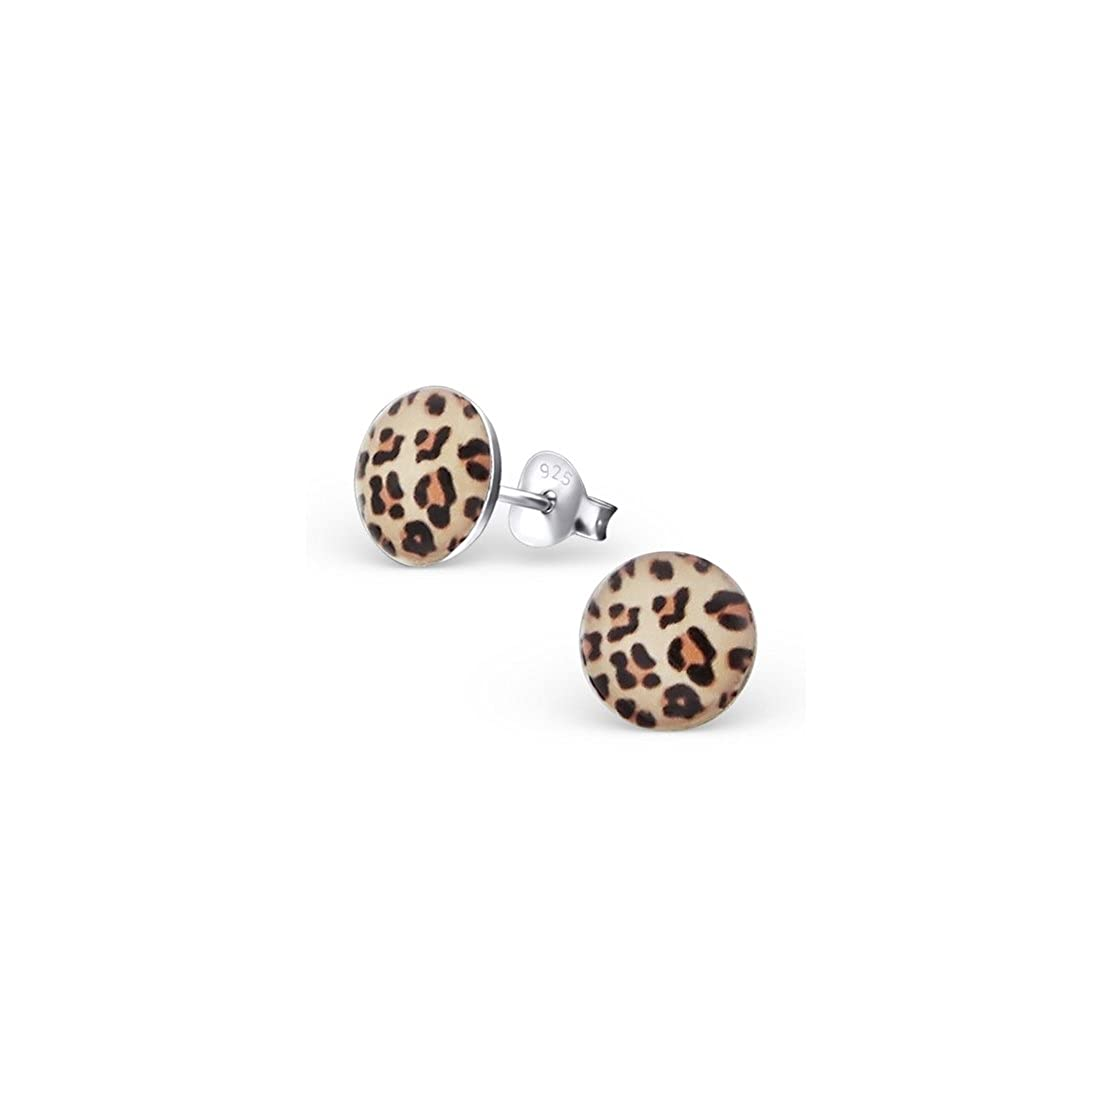 ChildrenS 925 Sterling Silver Giraffe Colorful Ear Studs